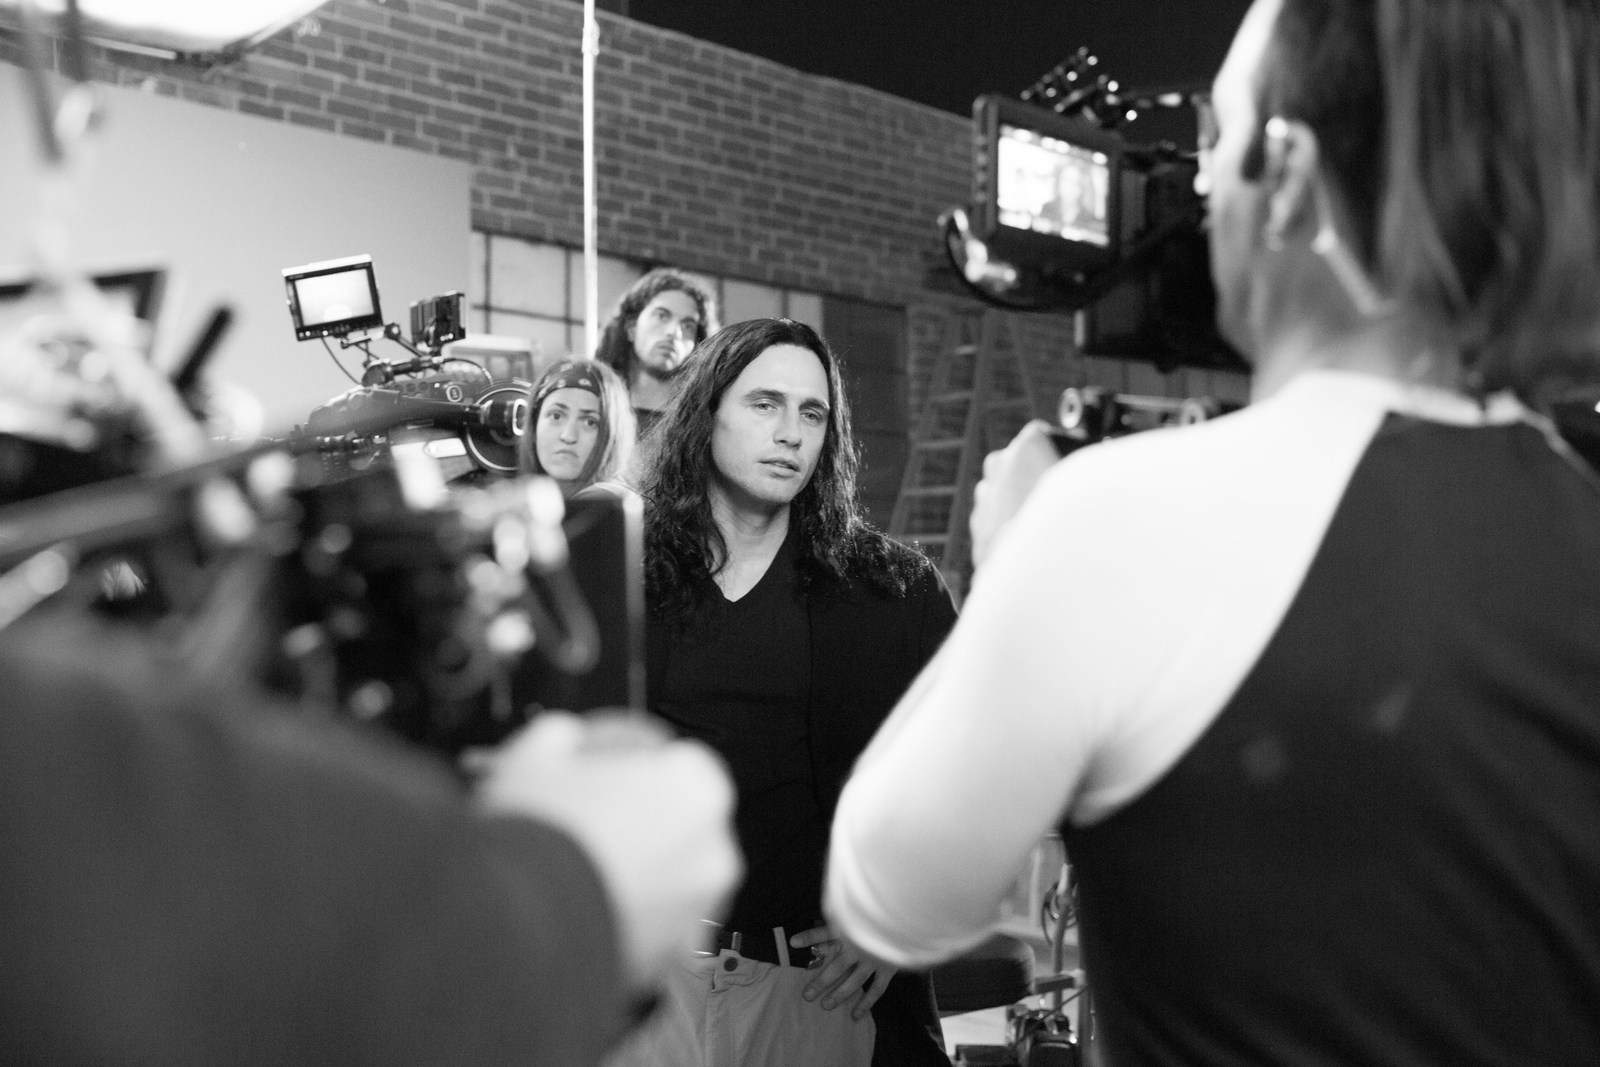 James Franco on the set of The Disaster Artist